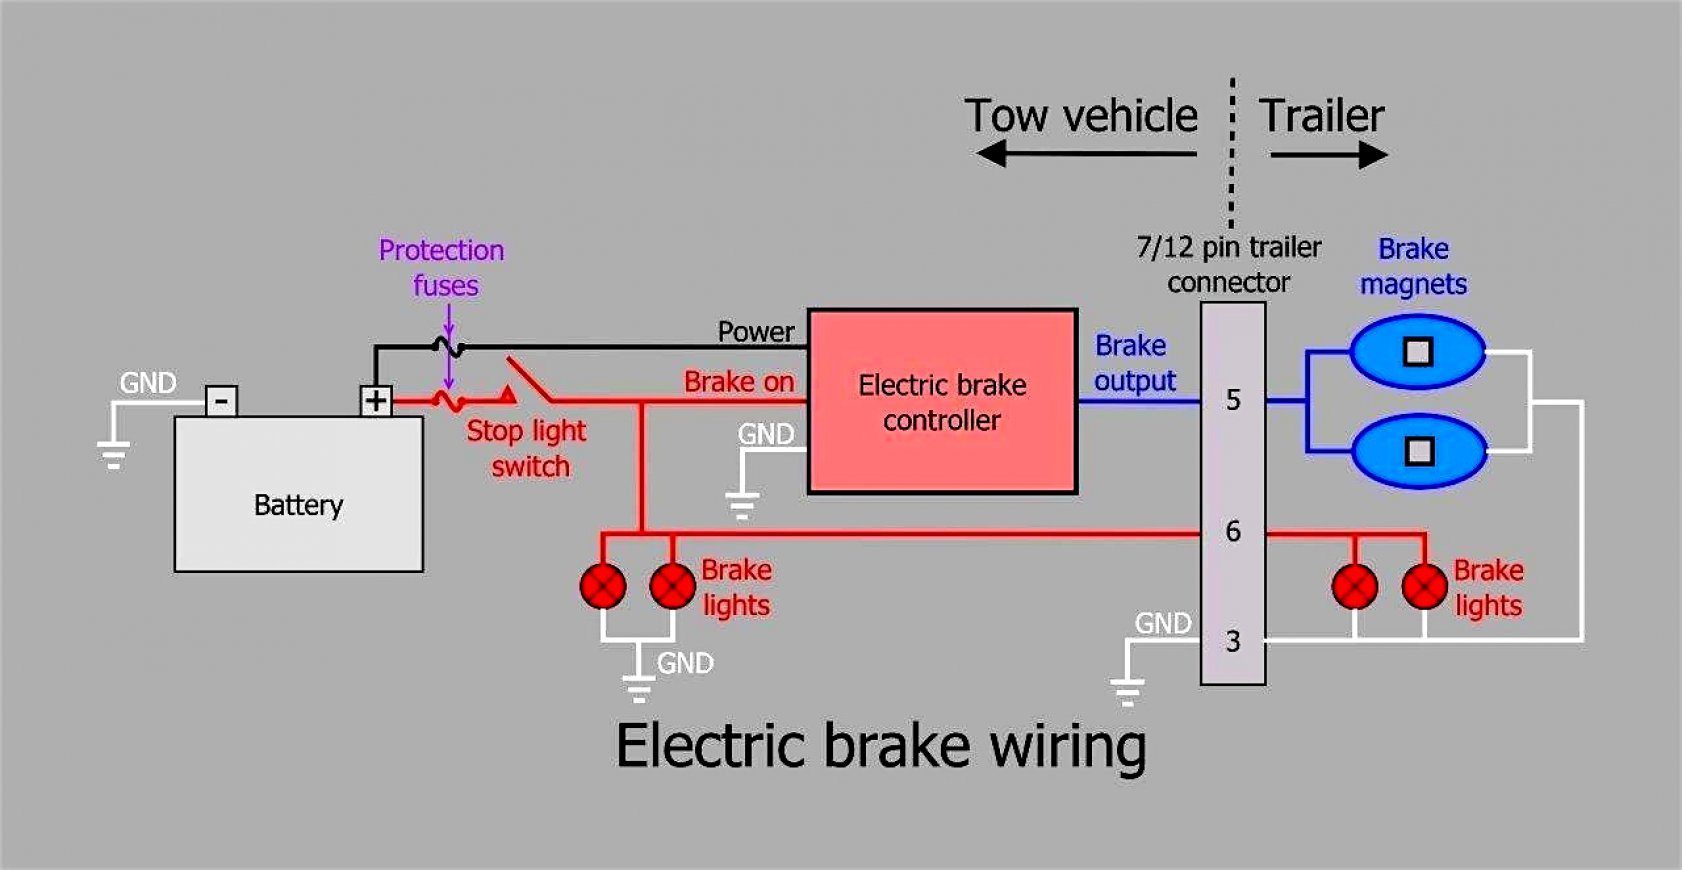 Power Brake Wiring Diagram | Wiring Diagram - Wiring Diagram For Trailer With Electric Brakes